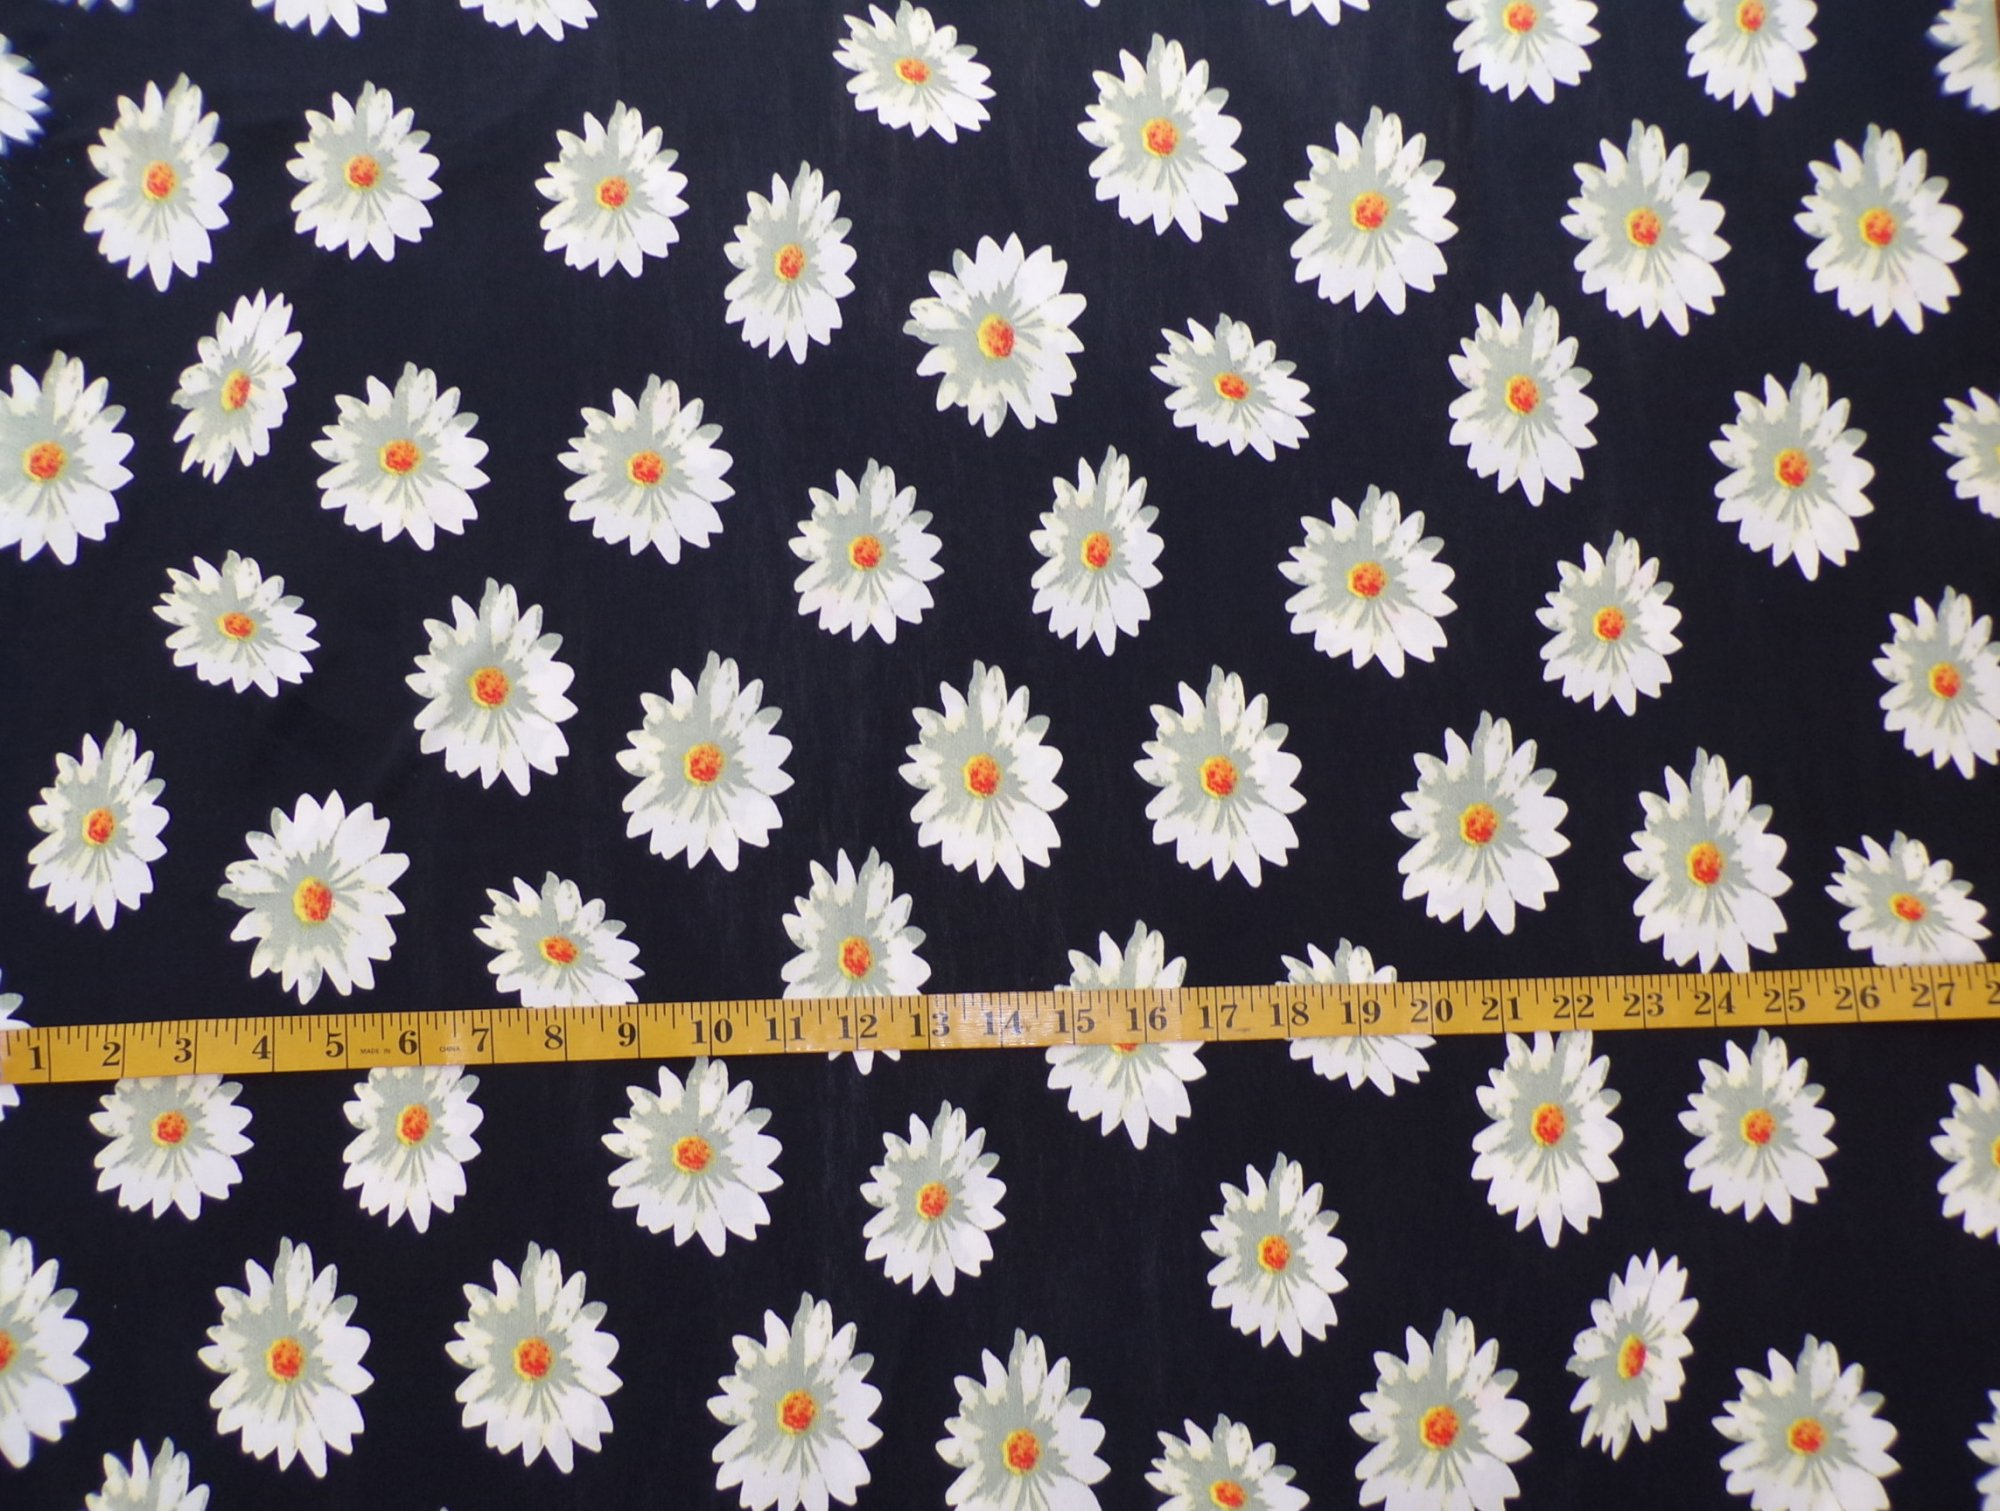 ITY Jersey - Black with Daisies